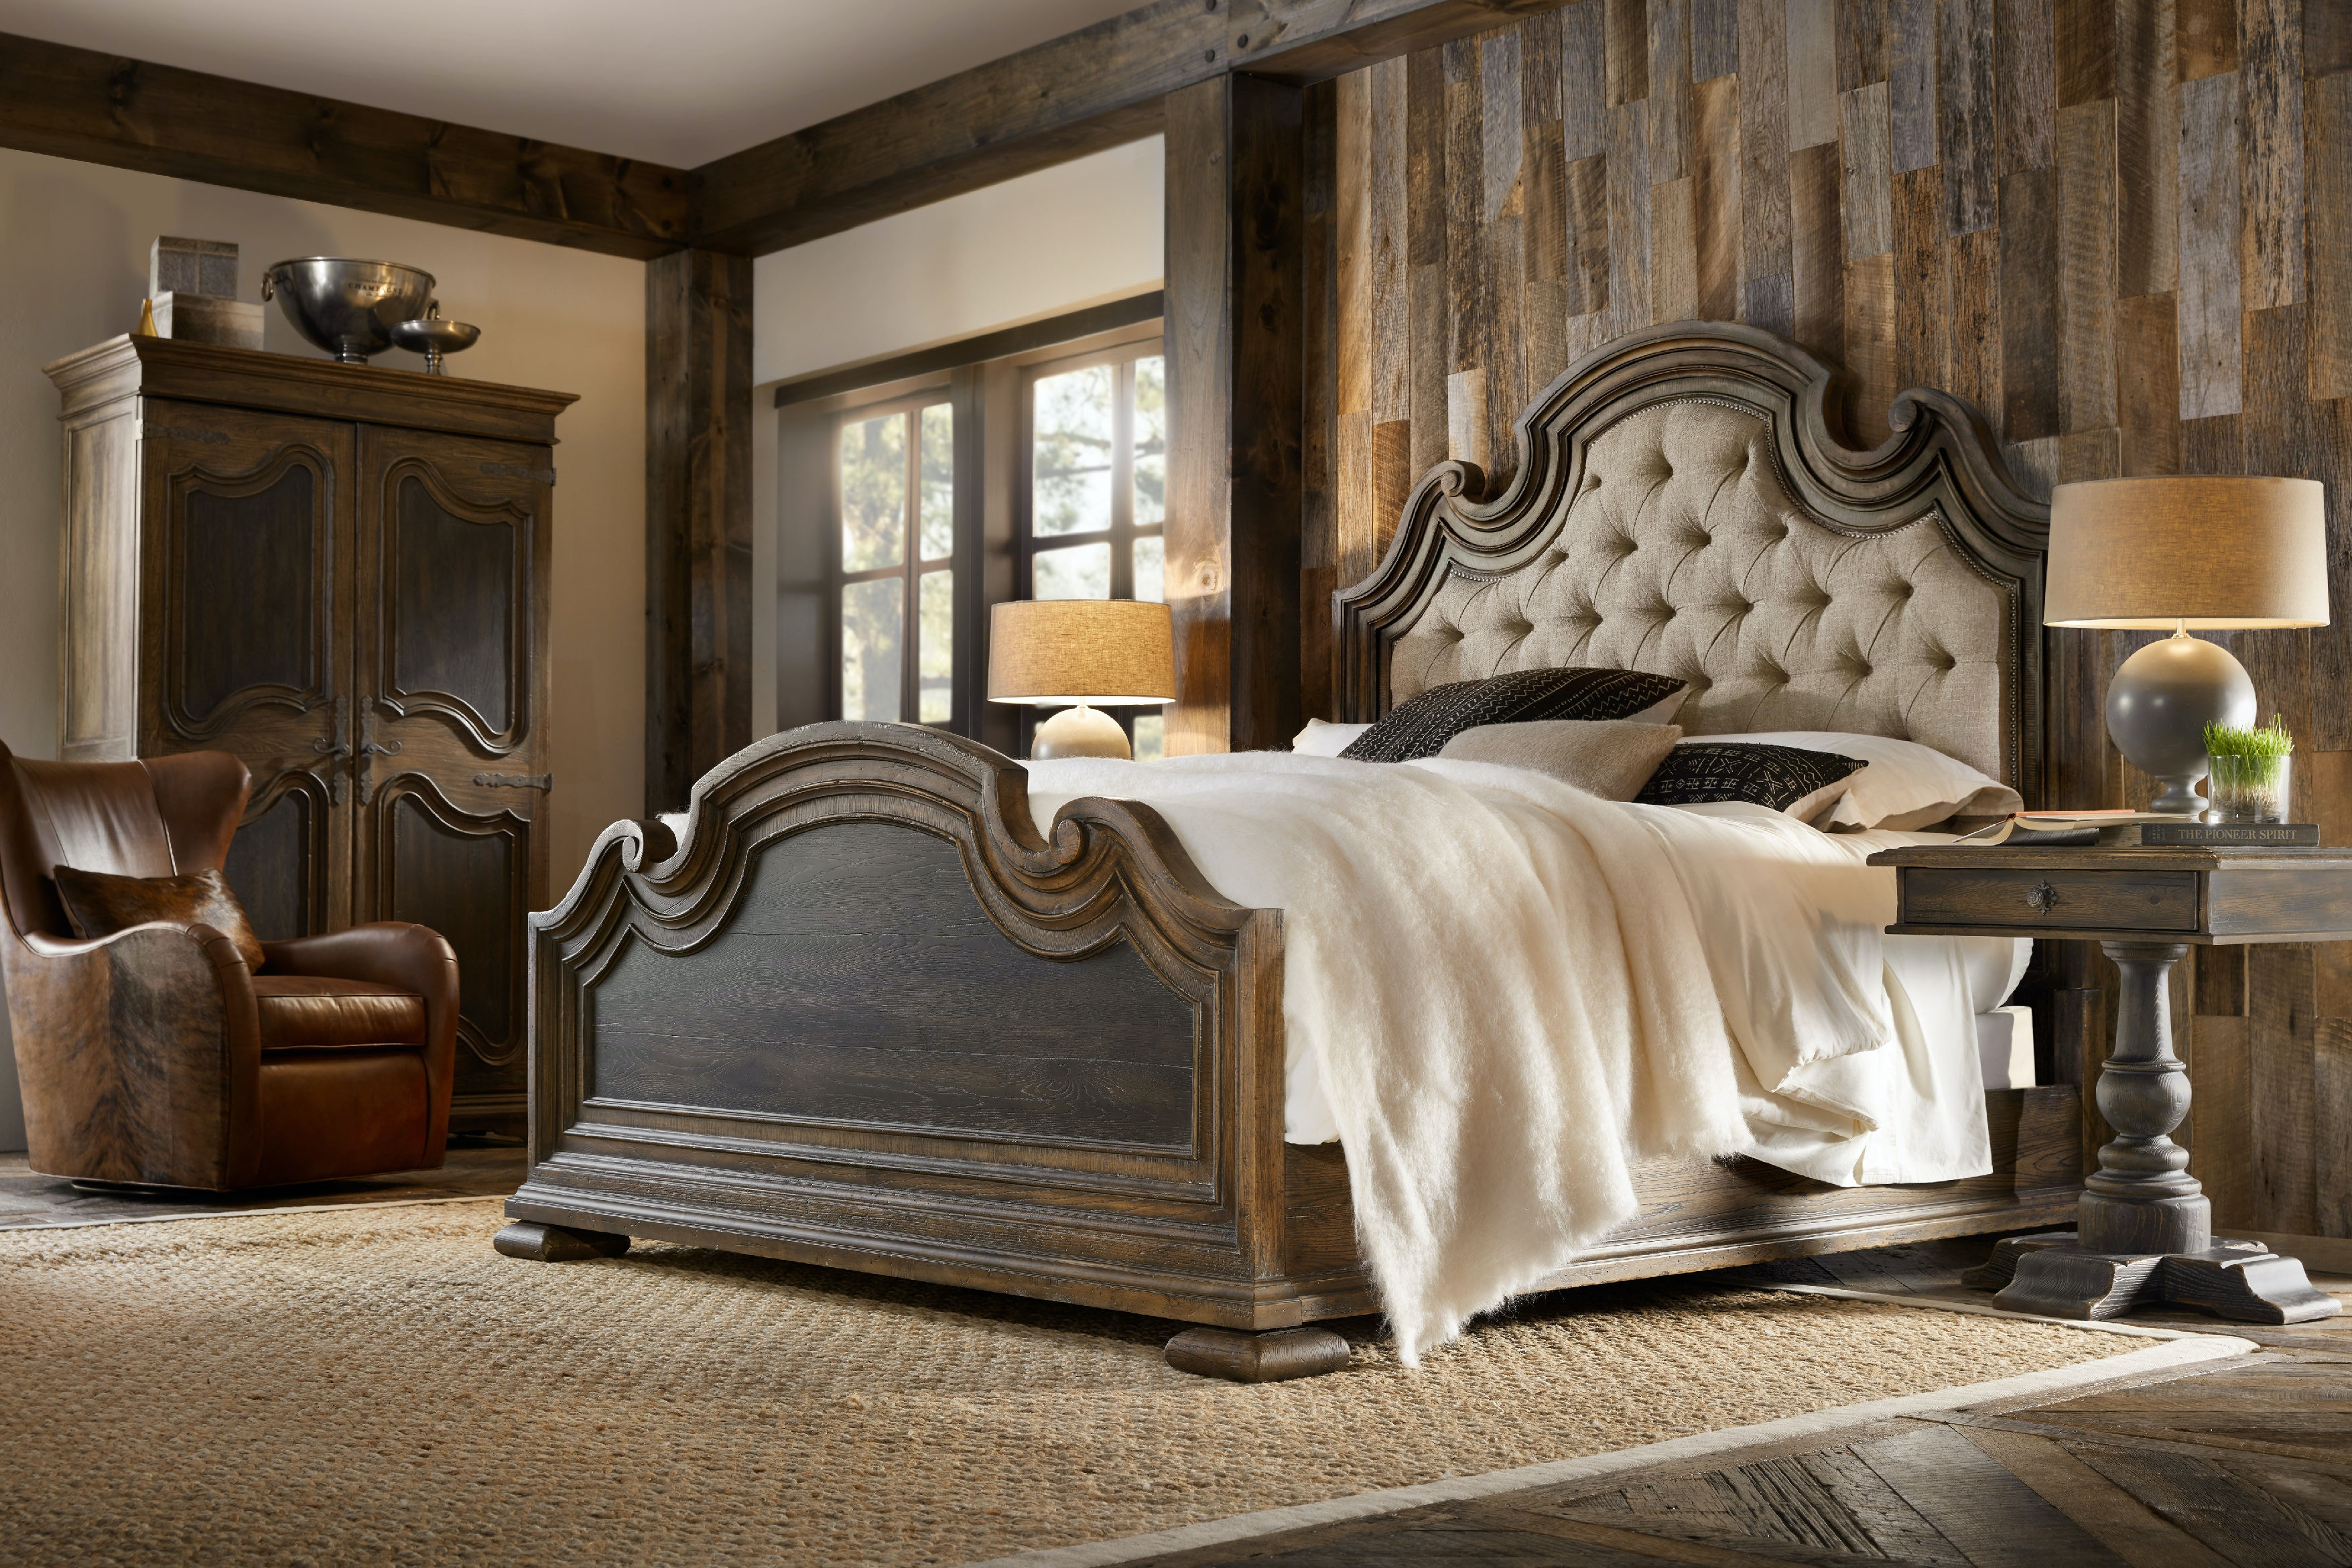 Hooker Furniture Bedroom Fair Oaks King Upholstered Bed 5960-90866-MULTI